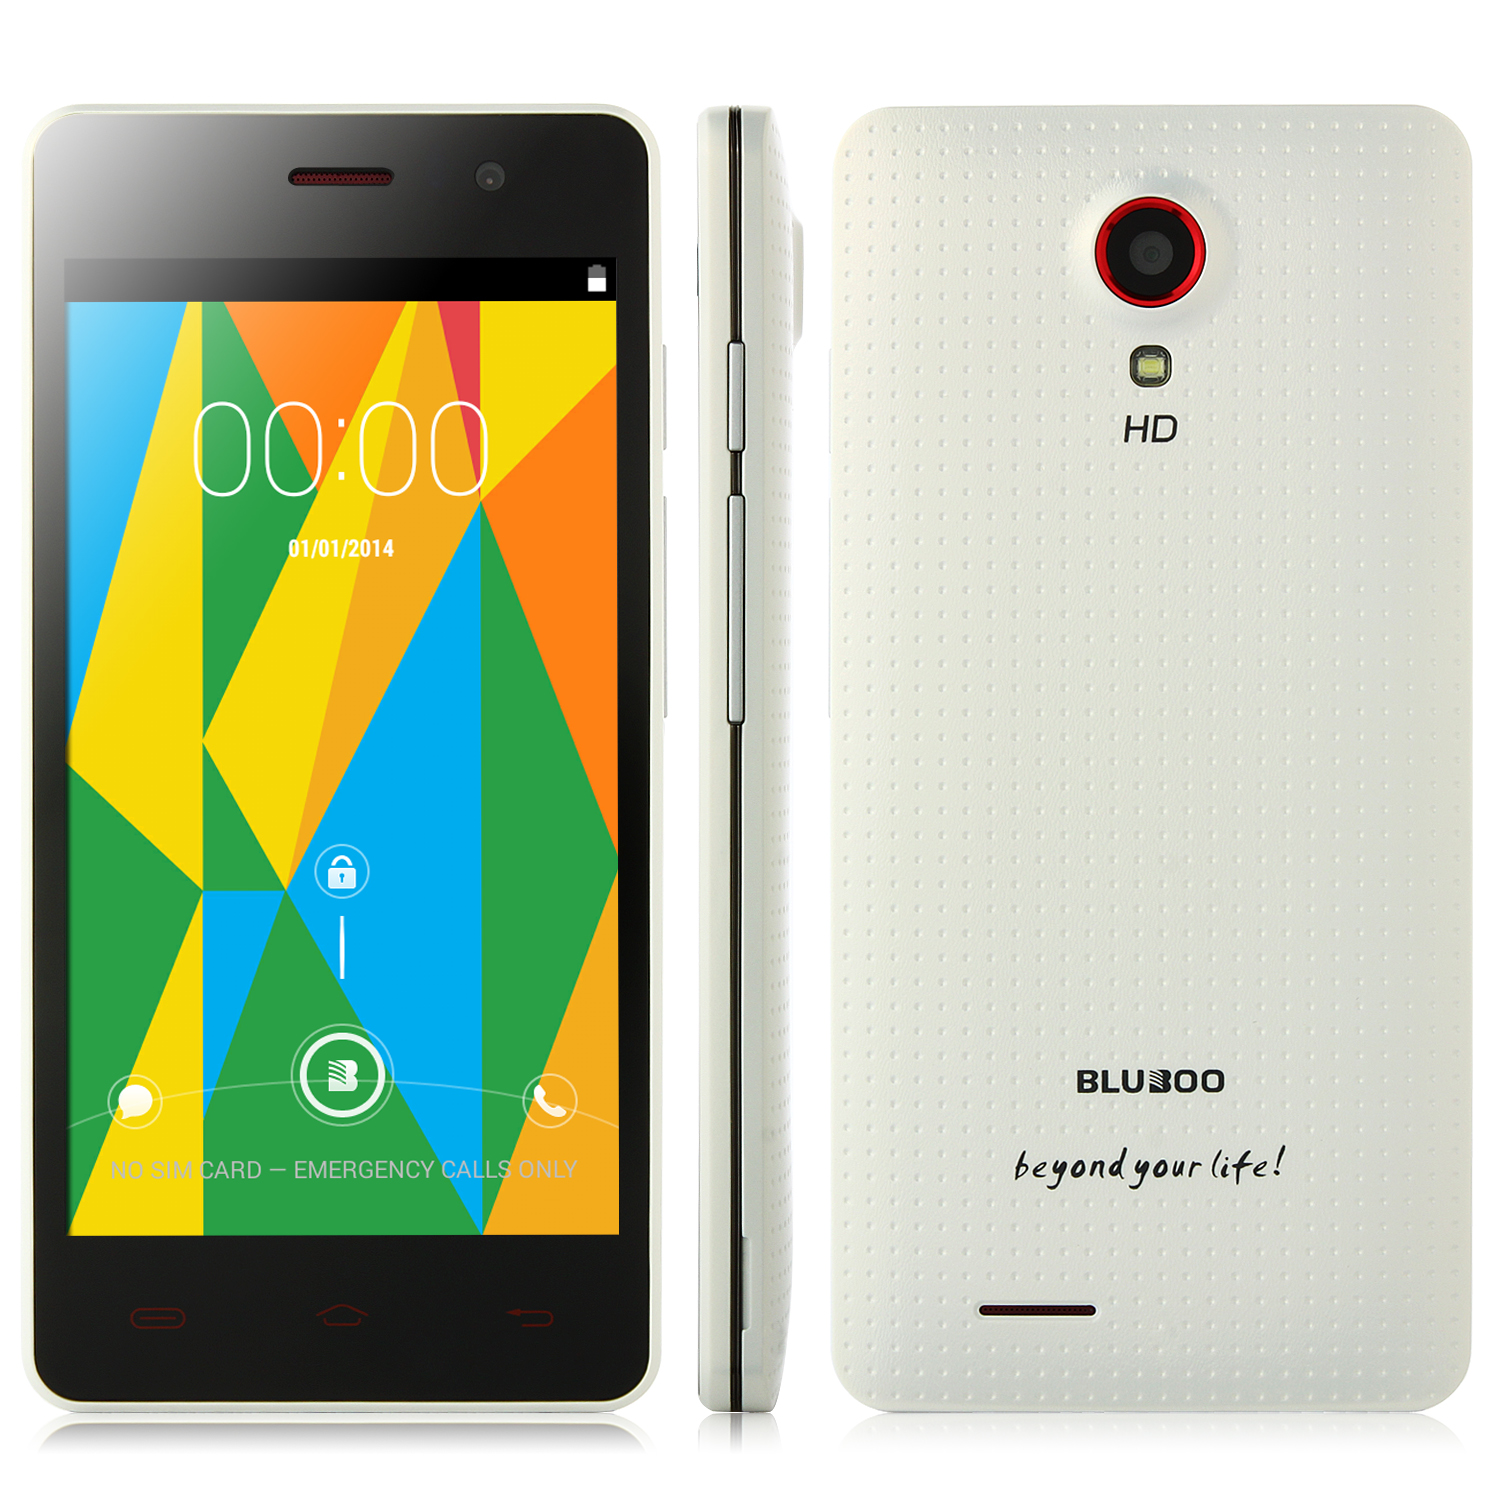 BLUBOO X3 Smartphone Android 4.4 MTK6582 4.5 Inch IPS Screen 3G GPS White